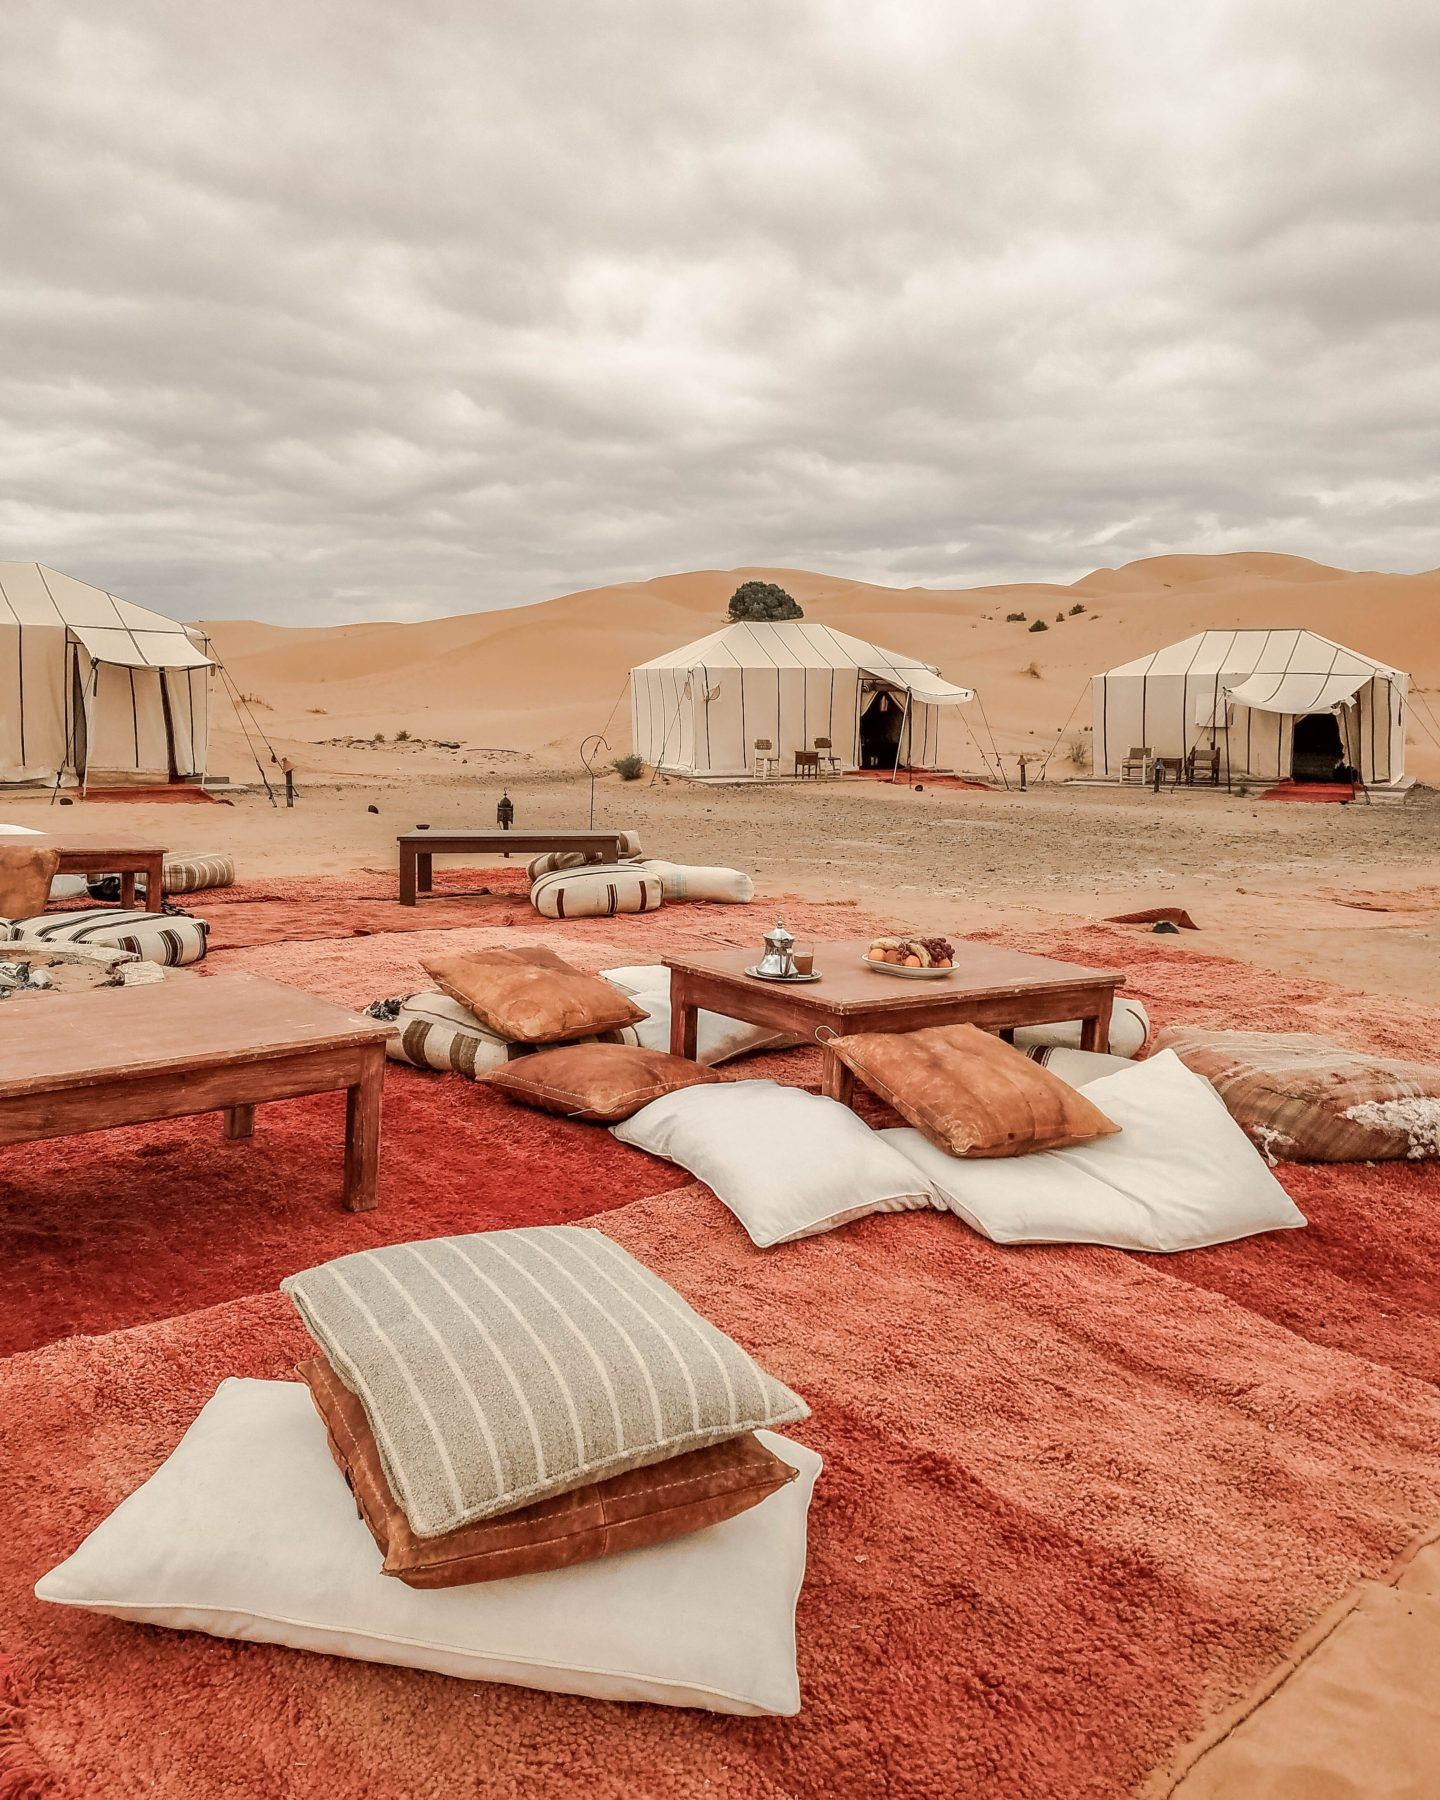 Click here to read about glamping at Merzouga Luxury Desert Camp in the Sahara Desert in Morocco. Sahara desert glamping in Morocco is unlike any other experience you'll have. You'll get to climb on sand dunes, ride camels, sandboard, and drink all the mint tea you can possibly stand. #moroccoglamping #saharadesert #minttea Morocco desert photography   Morocco desert   What to Buy in Morocco   Best Activities Morocco   Morocco things to do   Morocco Tea Set   Morocco Experiences   Silver Tea Set